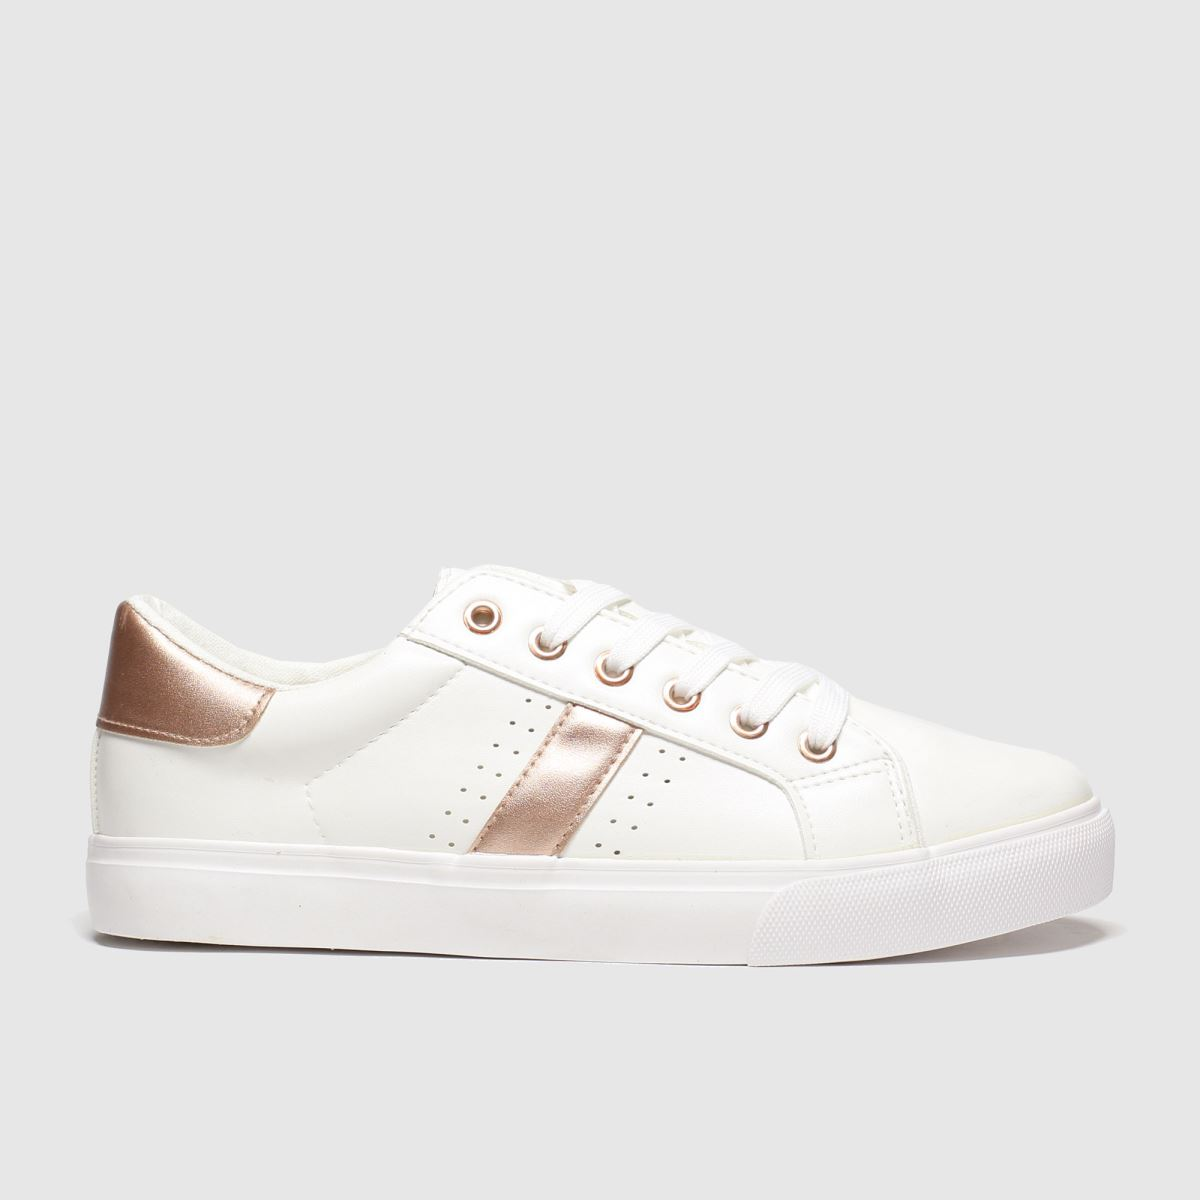 schuh Schuh White & Gold Medley Flat Shoes